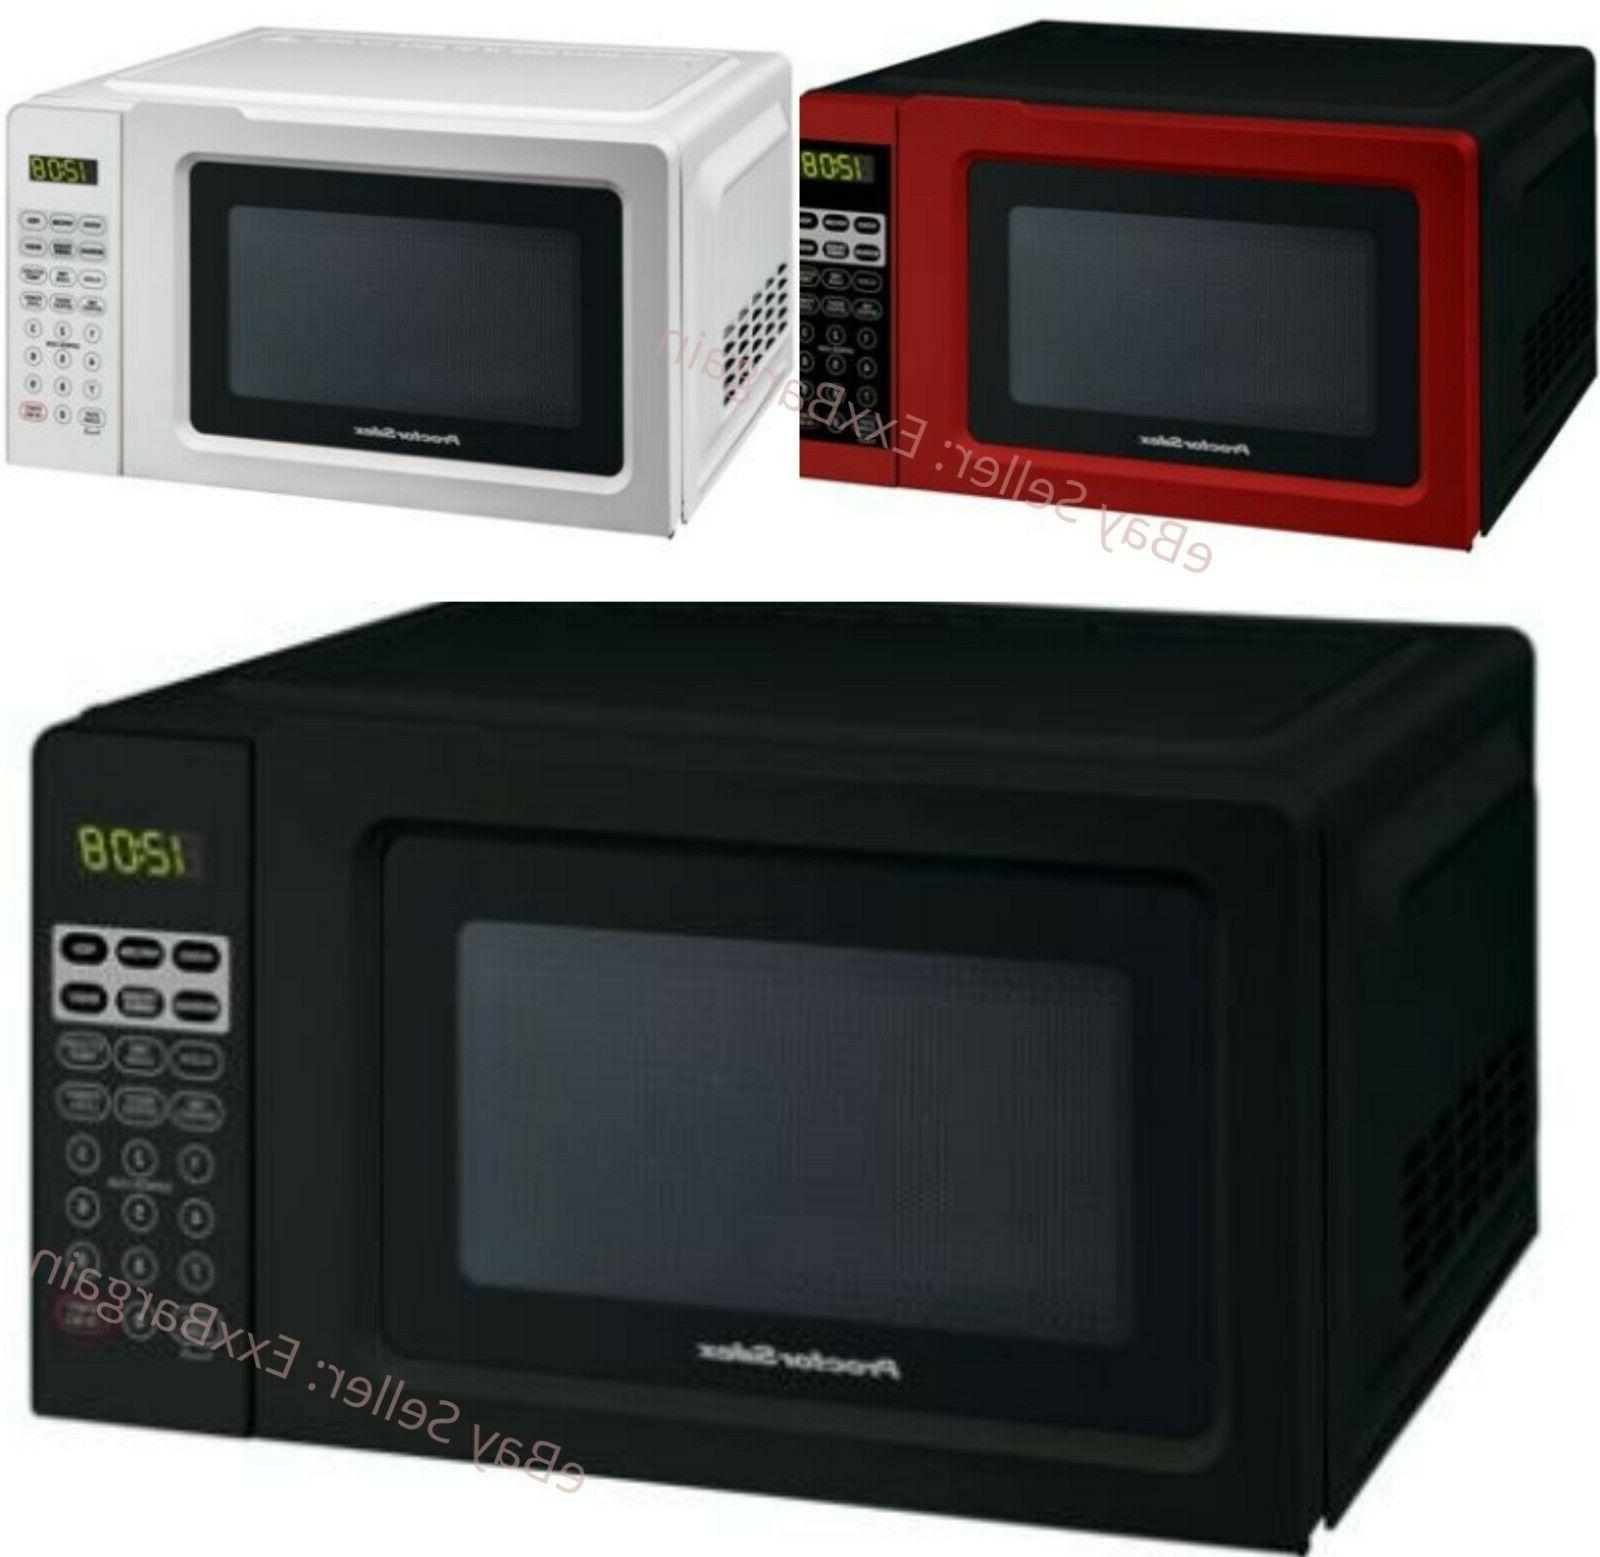 Digital Countertop Kitchen Office Microwave Red, White